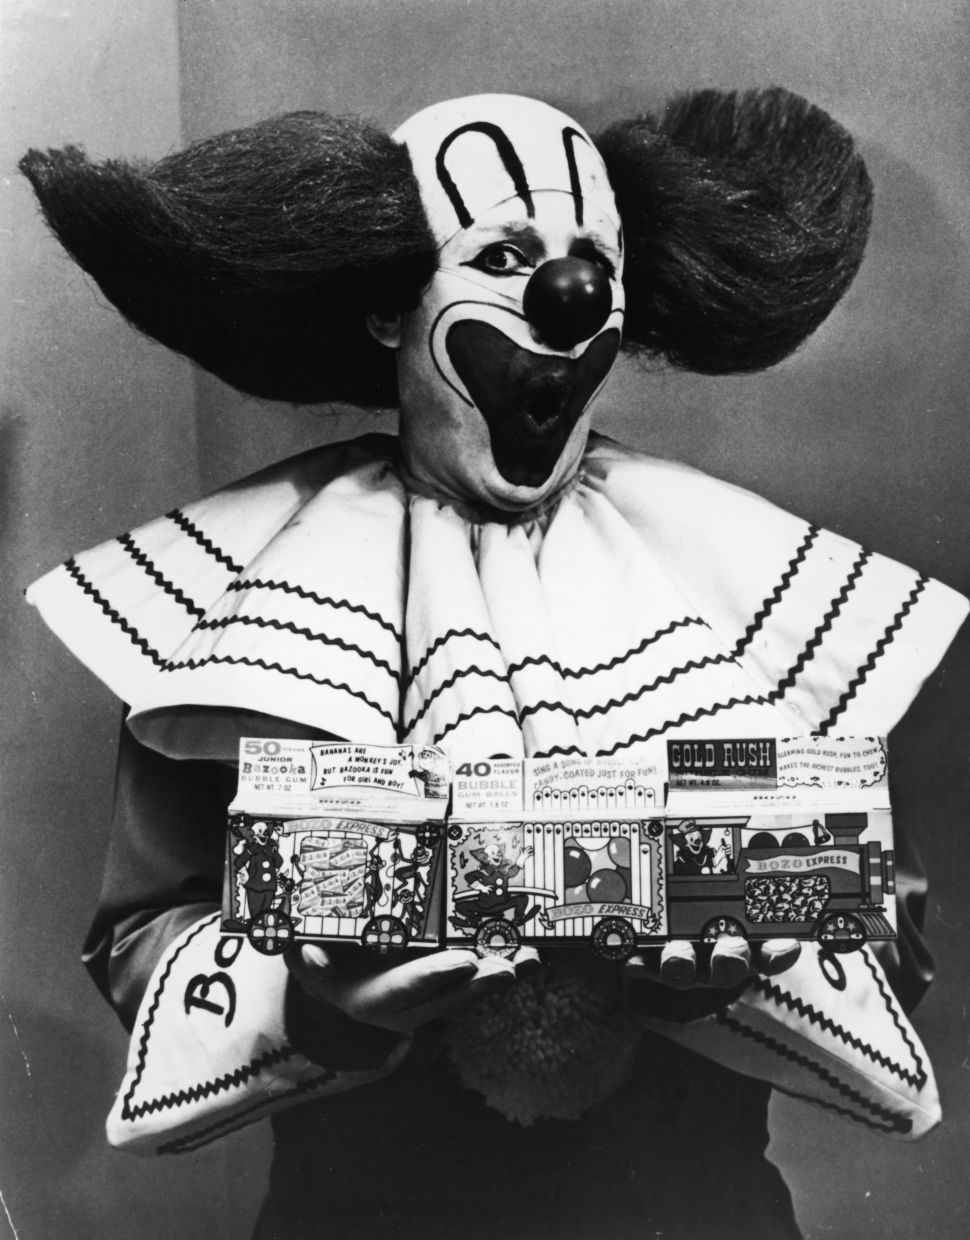 Frank Avruch dressed as Bozo the Clown in 1965.